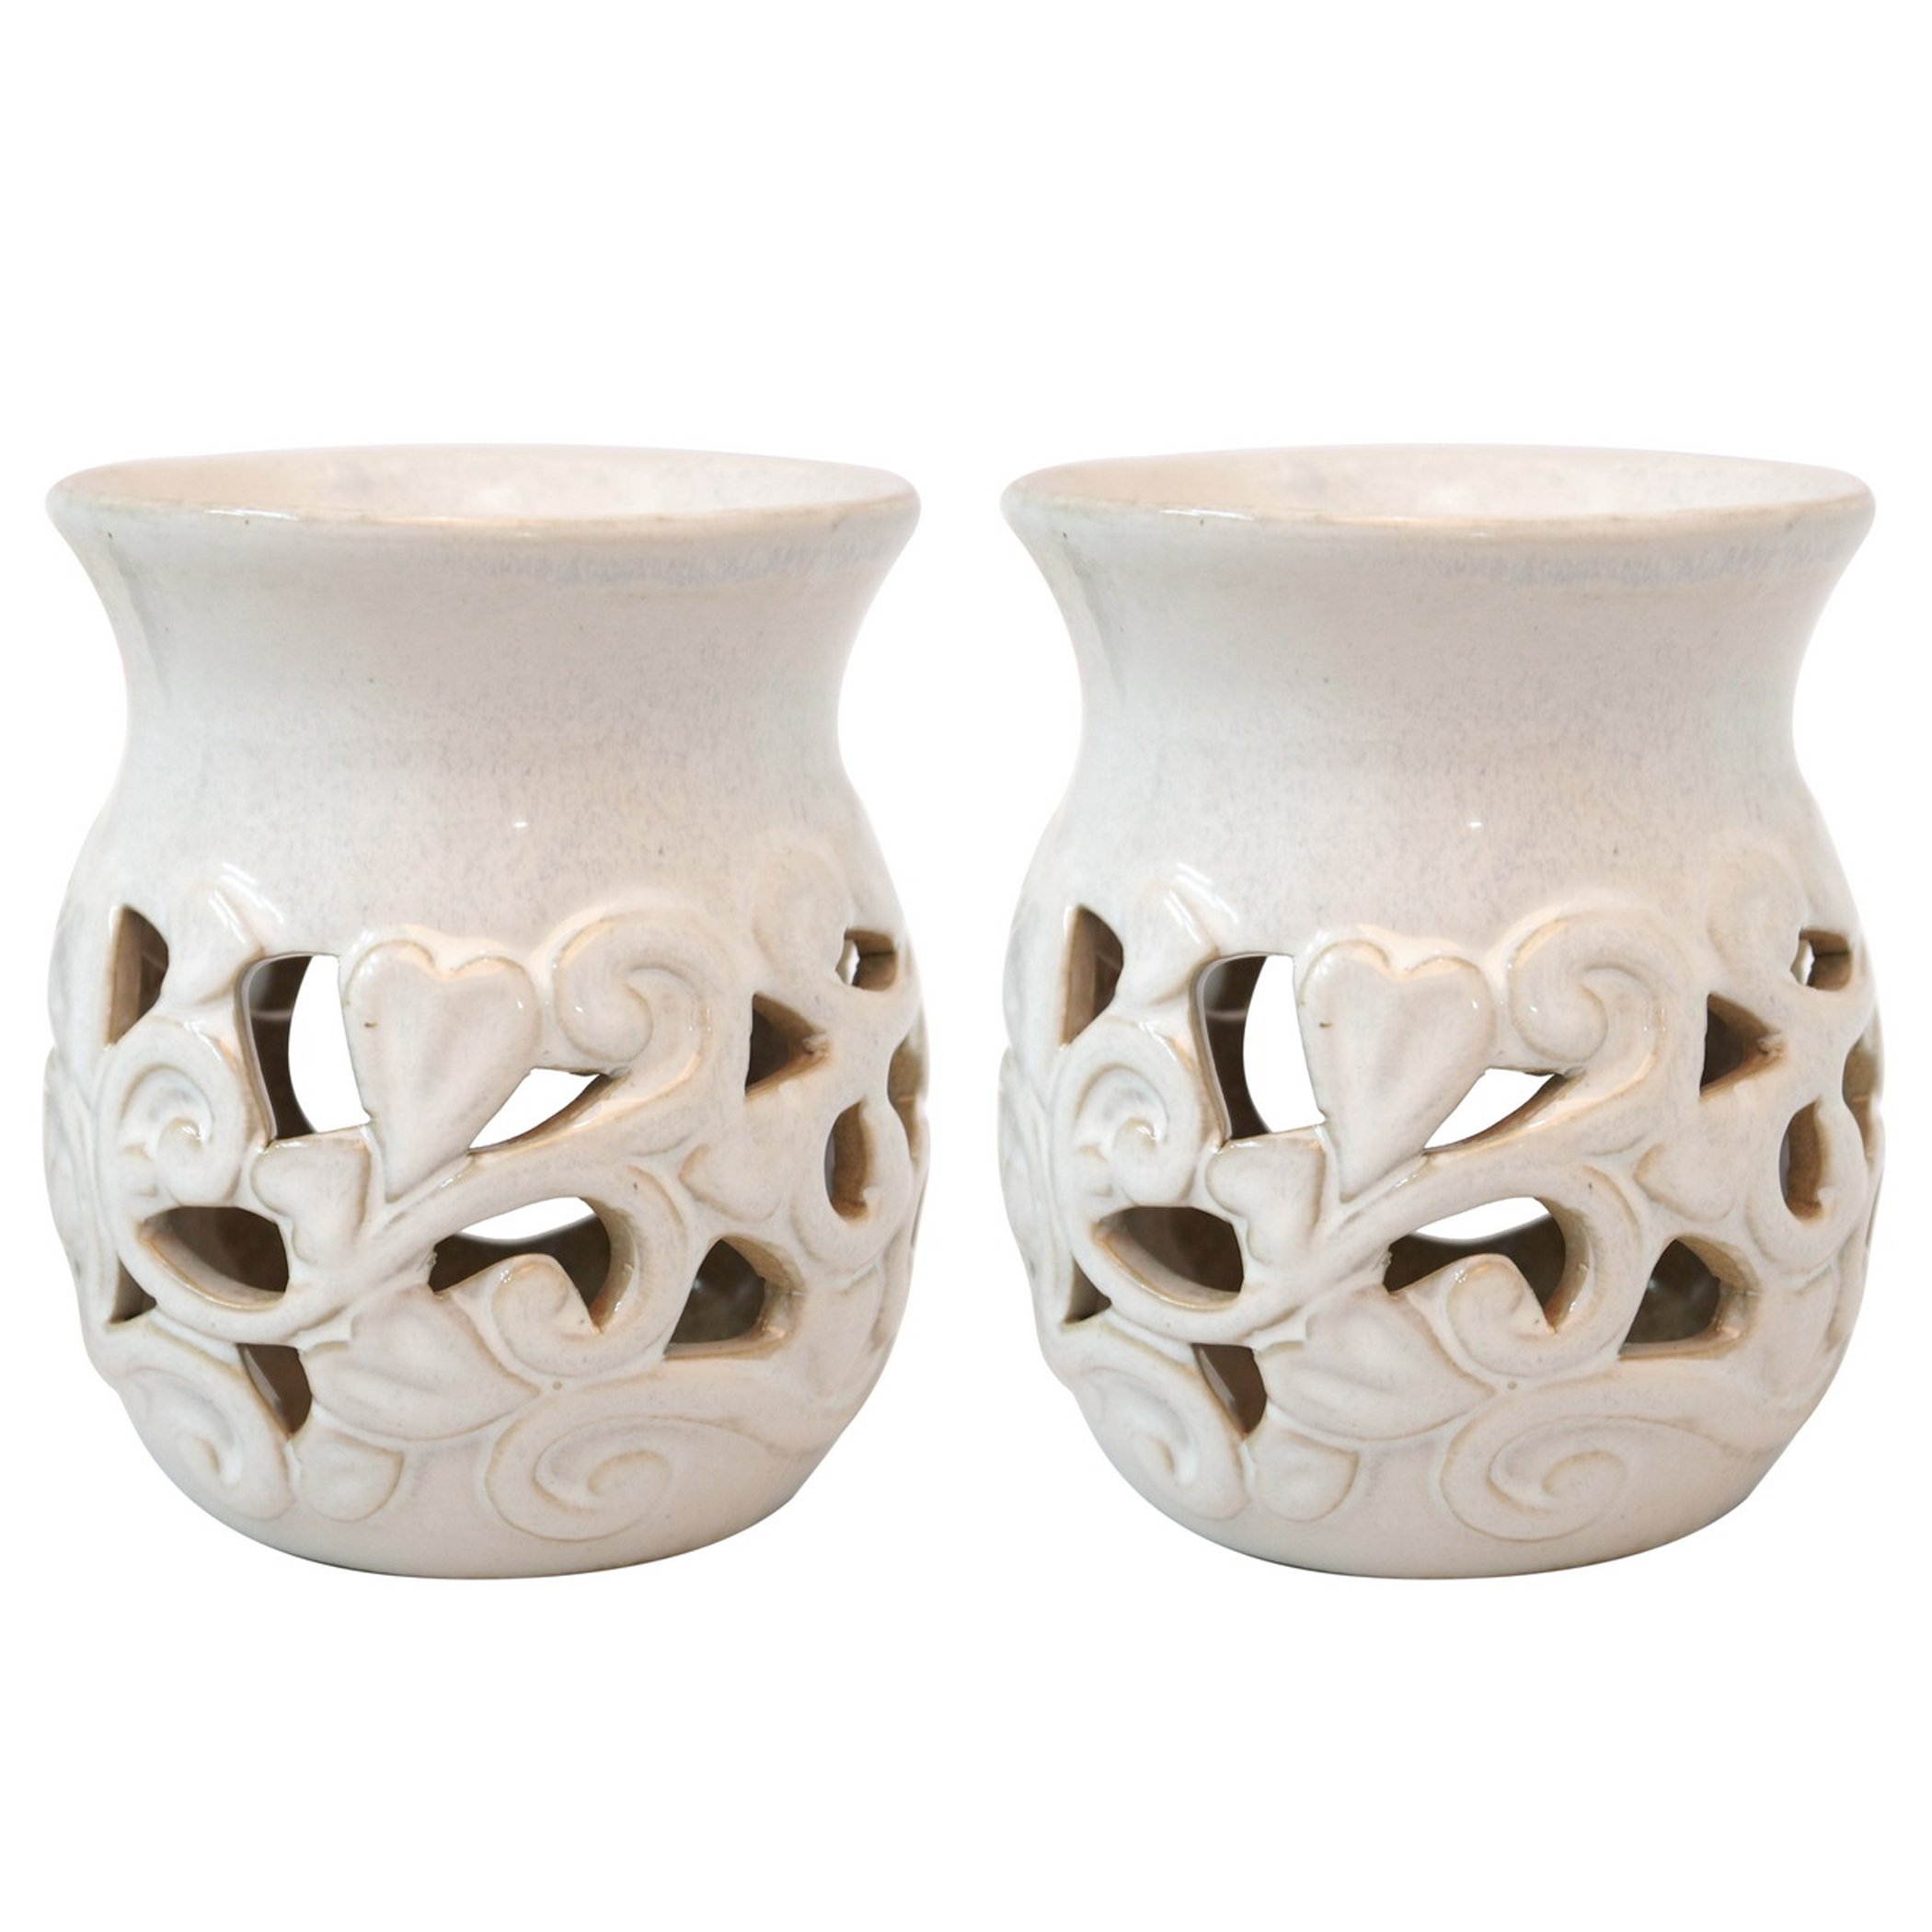 Hosley's Set of 2 White Ceramic Oil Warmer - 4.3'' High. Use with Tea Lights Ideal for Spa and Aromatherapy. Use with Hosley Brand Essential Oils and Fragrance Oils. O9 by Hosley (Image #3)